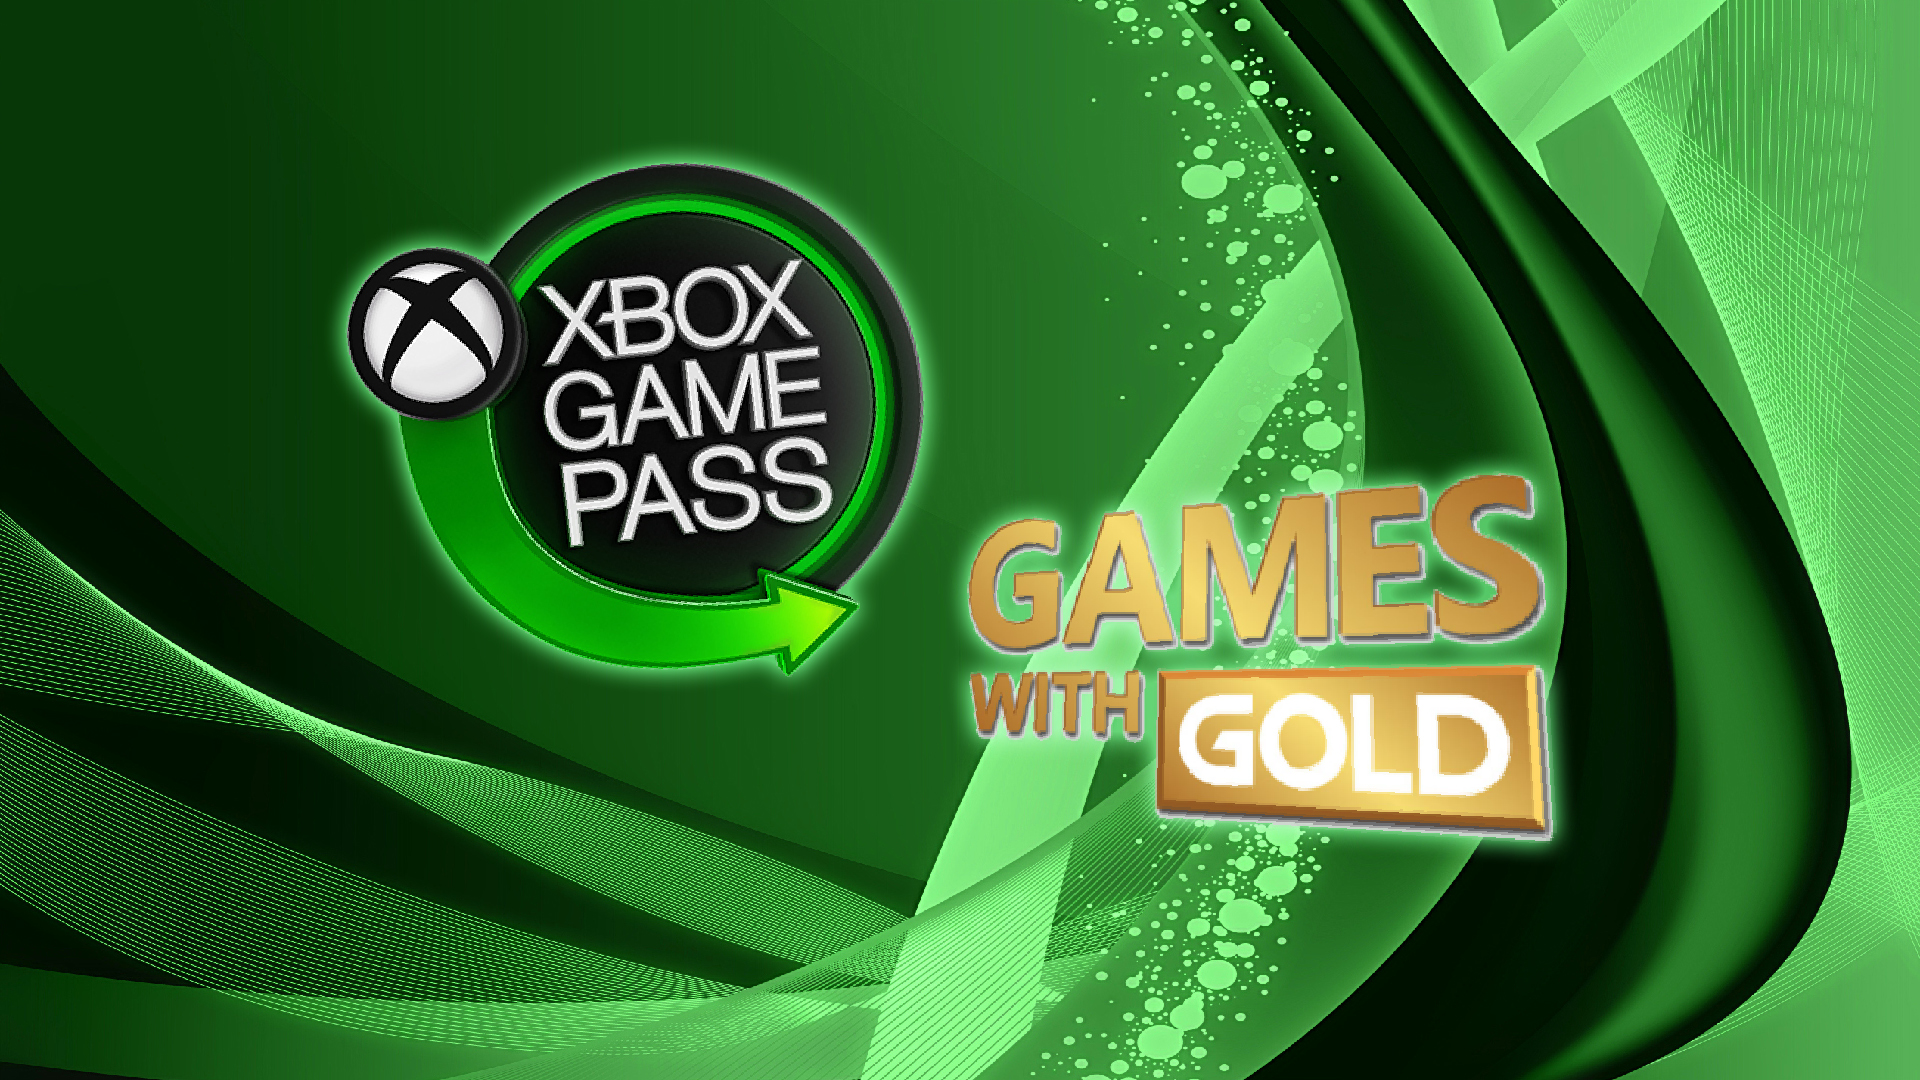 Xbox Game Pass et Games With Gold